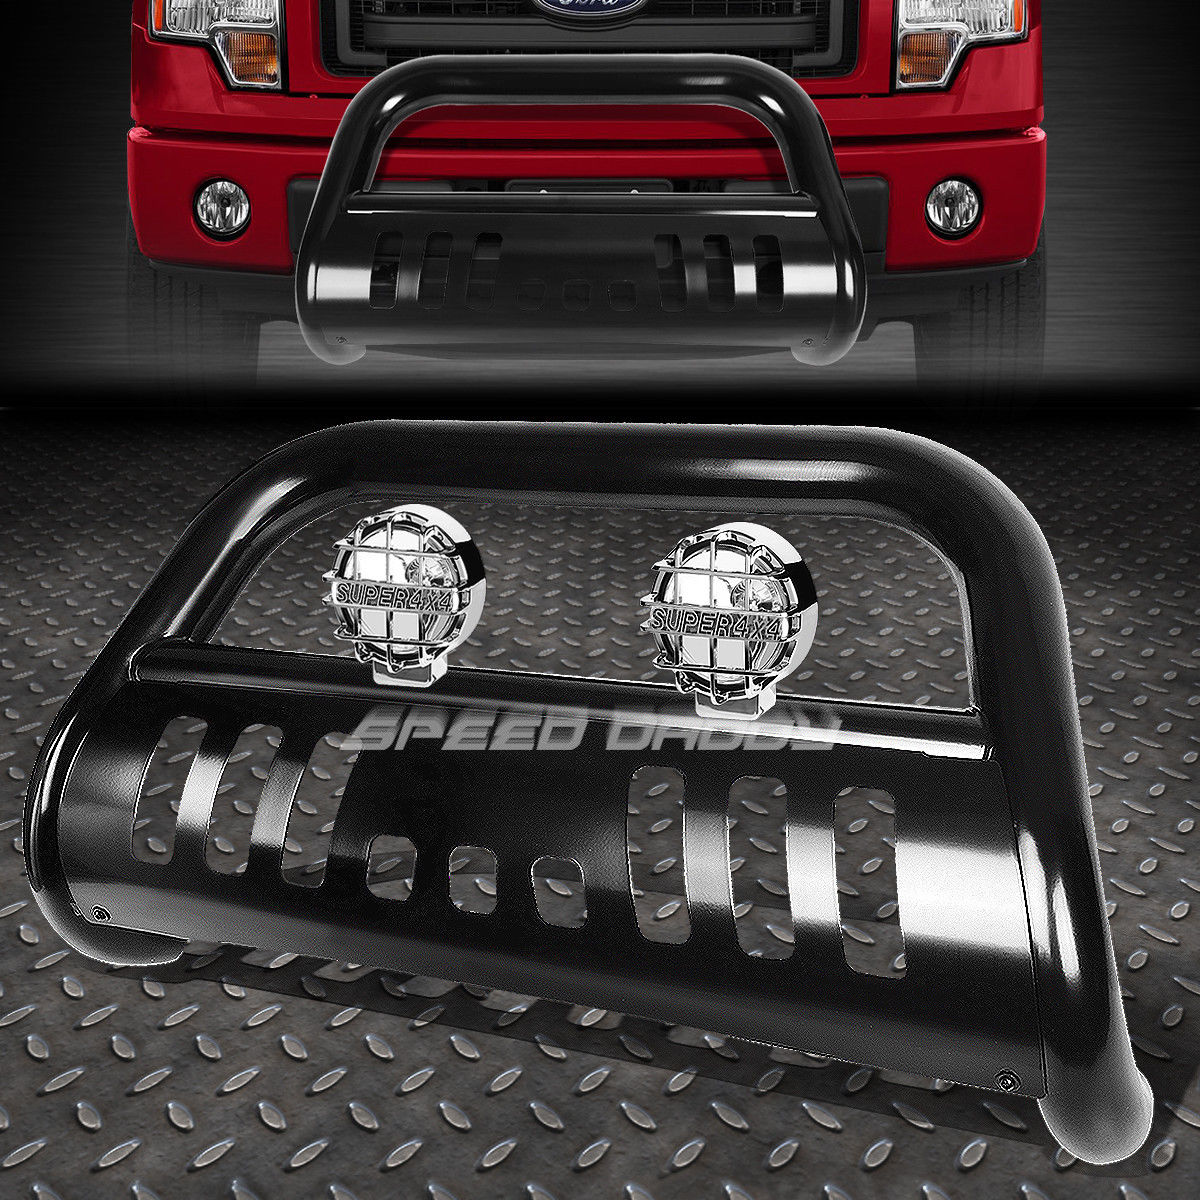 フォグライト BLACK BULL BAR GRILLE GUARD+CHROME FOG LIGHT FOR 11-16 FORD F250-F550 SUPERDUTY BLACK BULLバーグリルガード+クロムフォグライト11-16 FORD F250-F550 SUPERDUTY